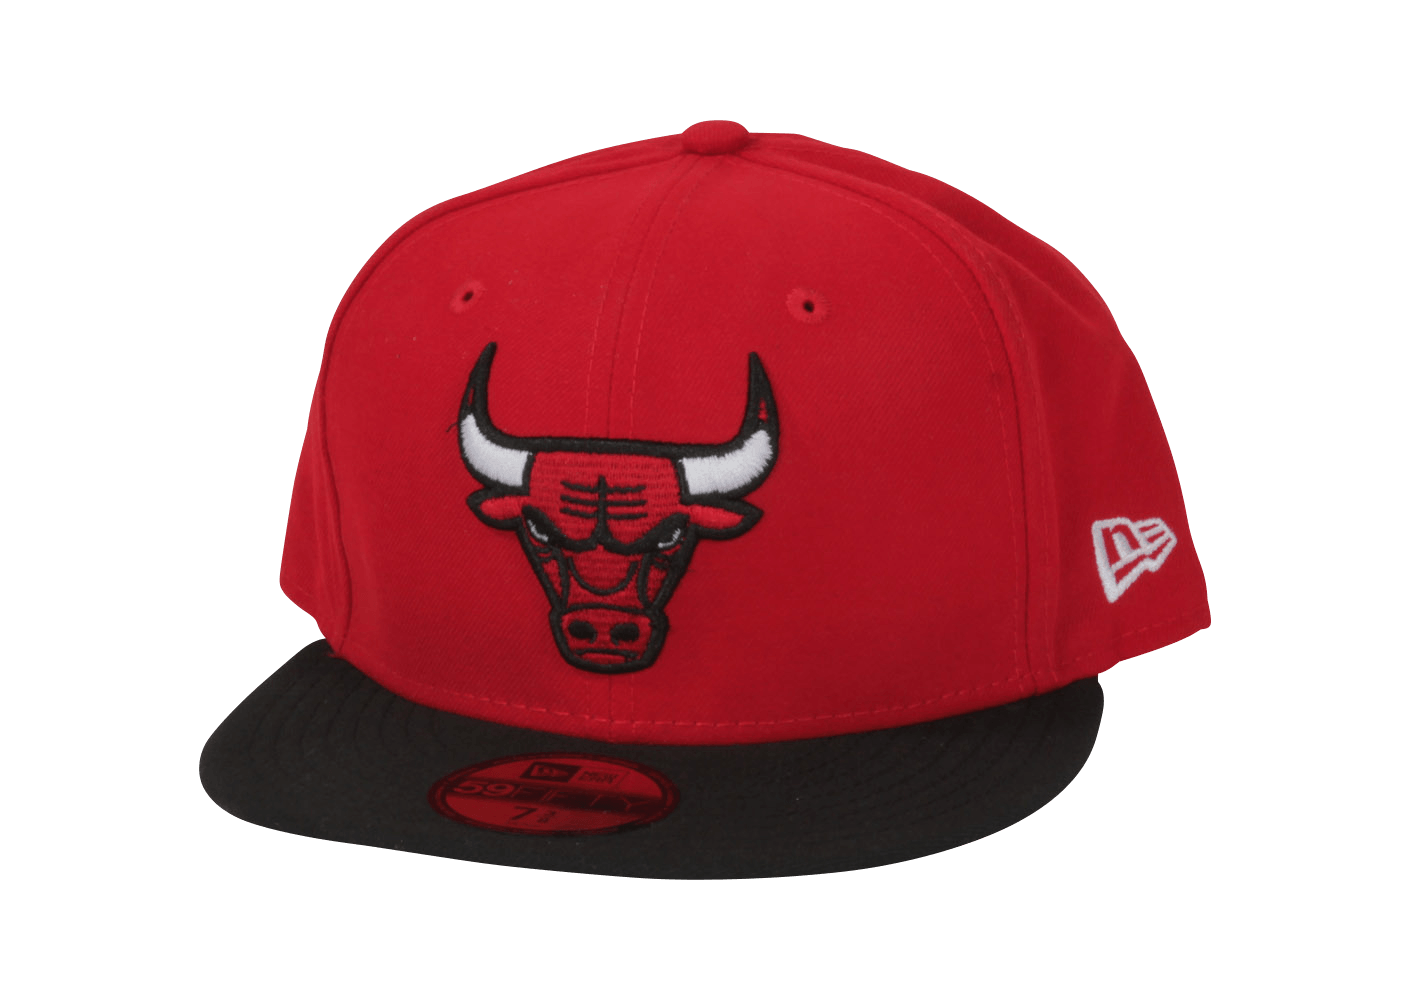 new era casquette nba chicago bulls rouge casquettes. Black Bedroom Furniture Sets. Home Design Ideas